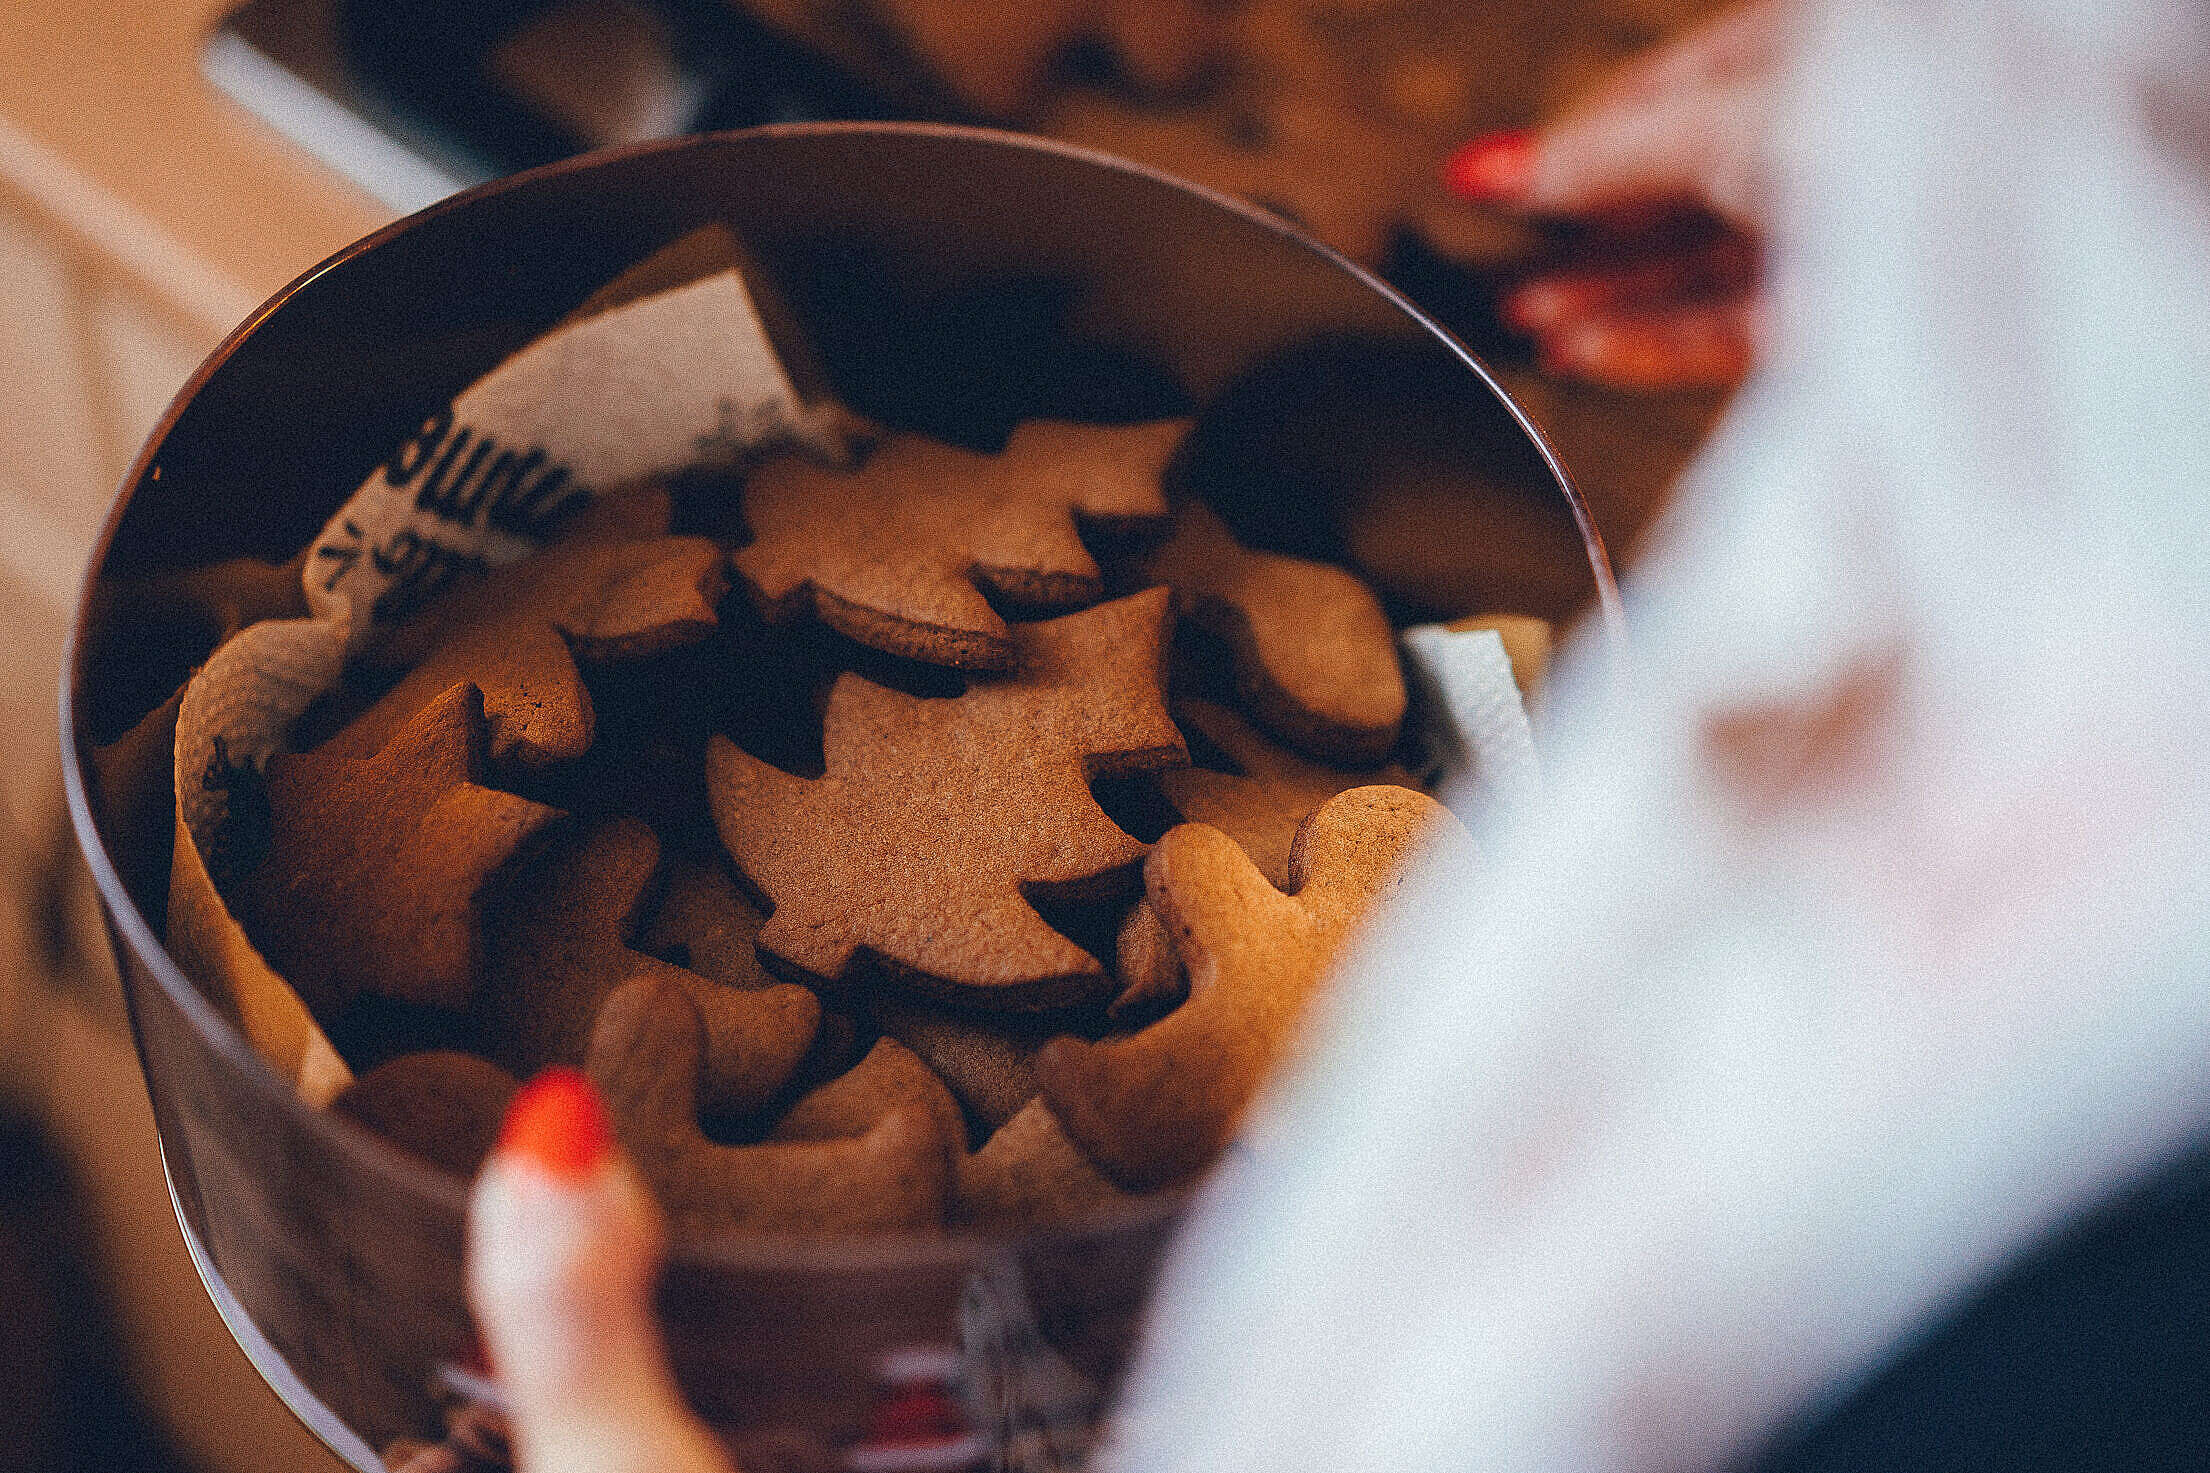 Christmas Sweets in a Box Free Stock Photo